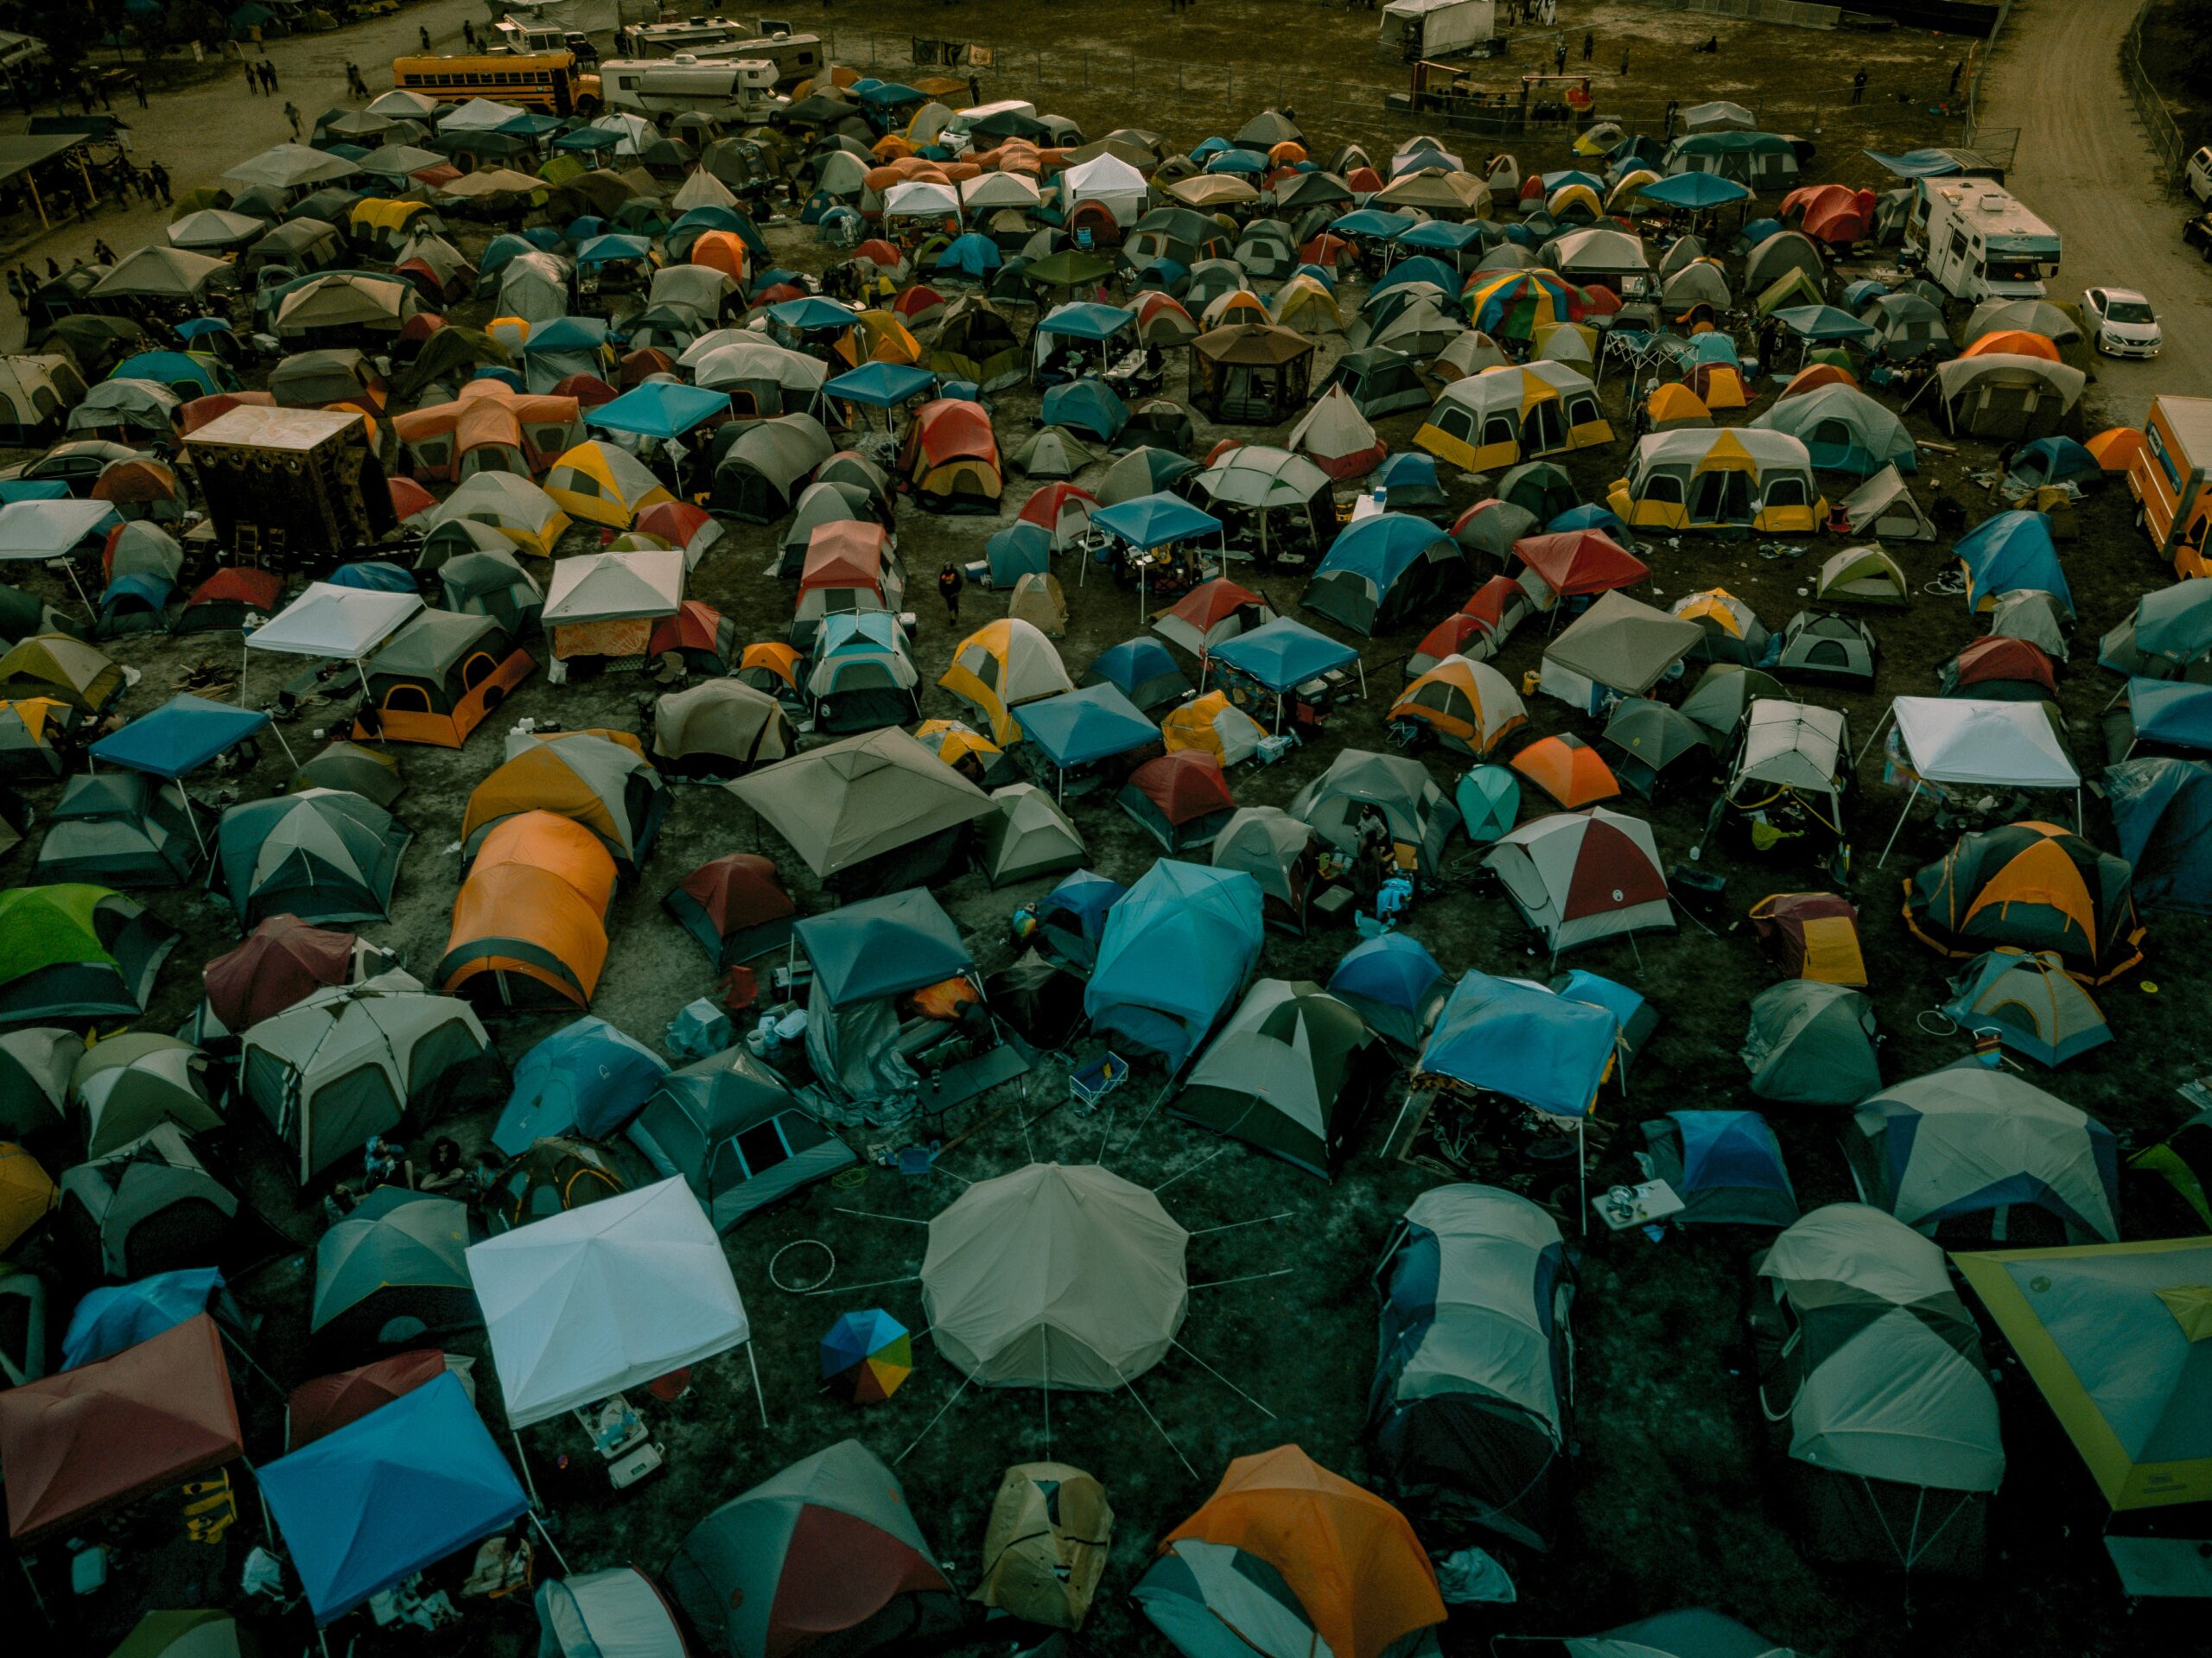 Amy Jean Blog post on Community Support and why we should not have people living in tents